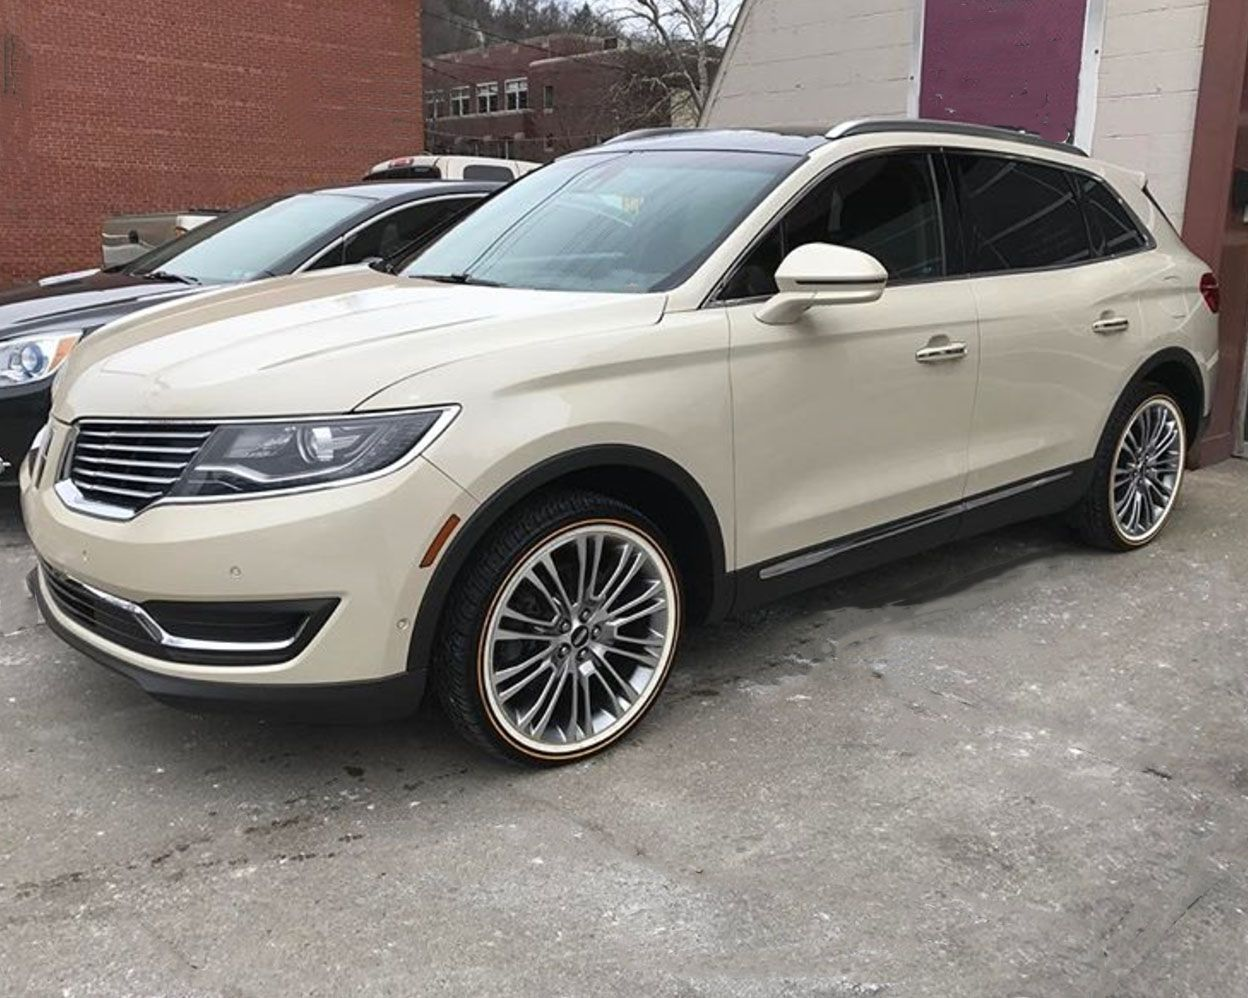 Lincoln Mkx On Vogues What Do You Think Tyres Lincoln Mkx